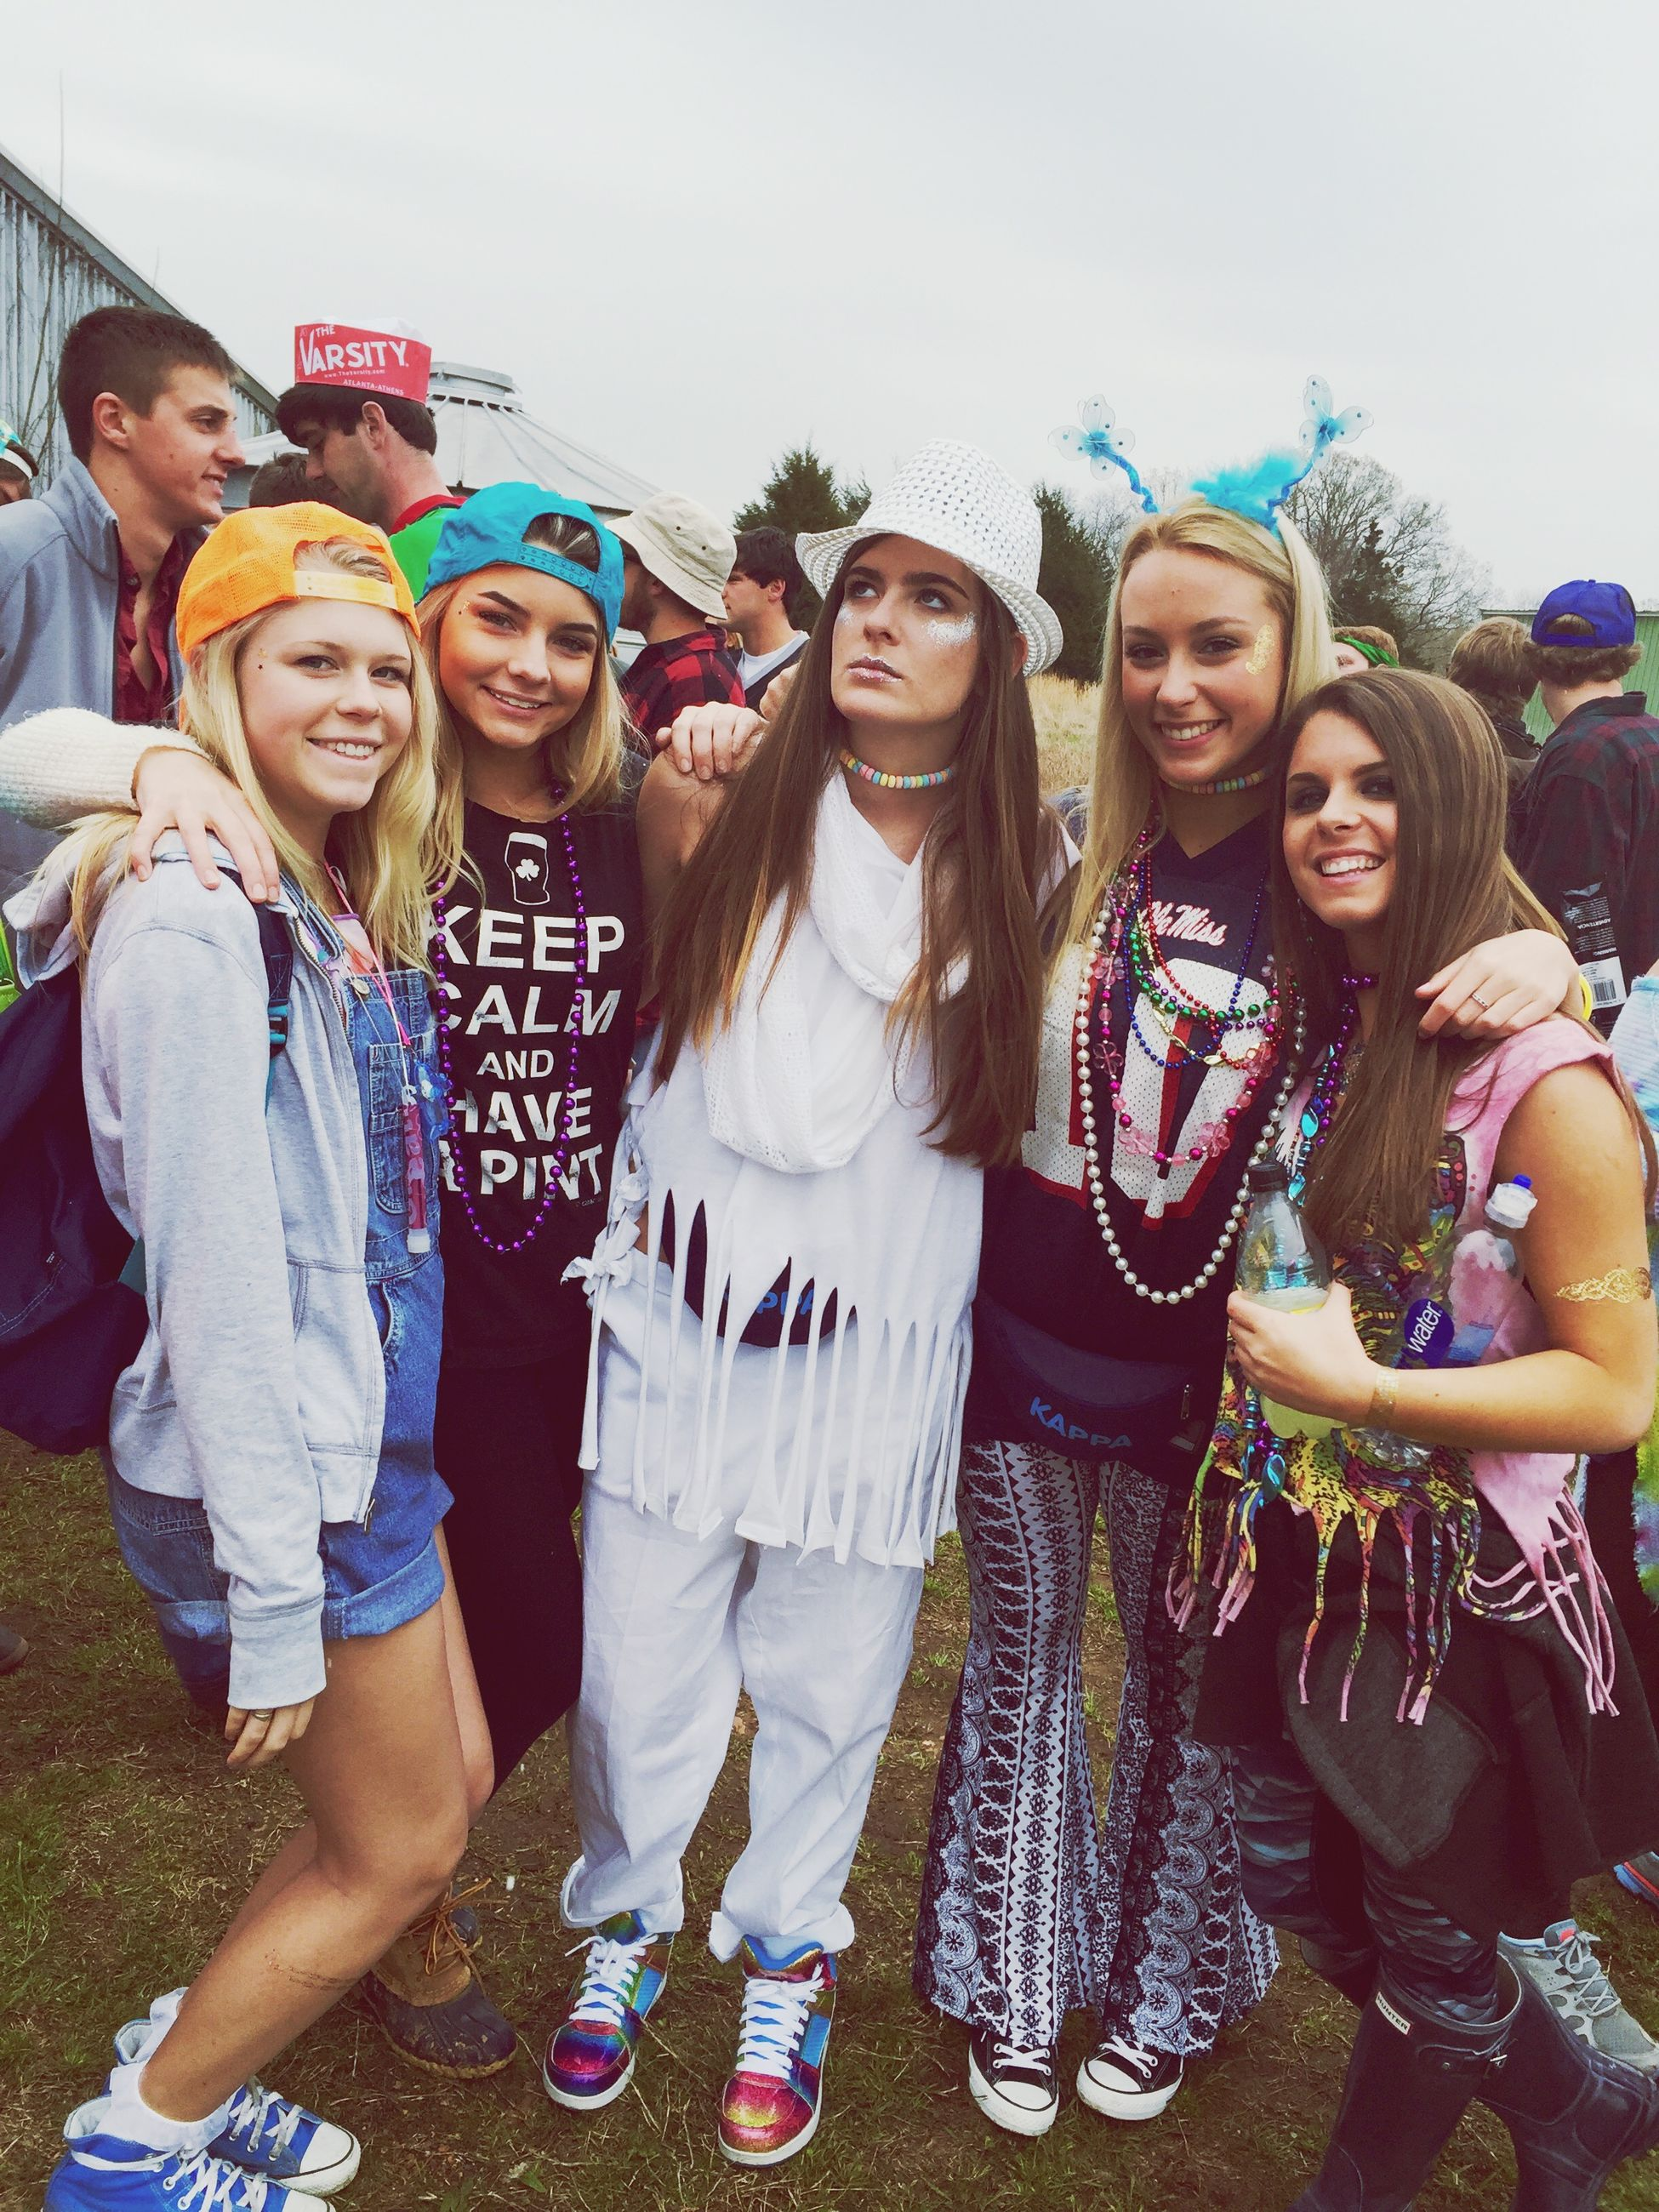 togetherness, lifestyles, bonding, leisure activity, person, portrait, young adult, friendship, casual clothing, smiling, happiness, looking at camera, love, front view, young women, standing, fun